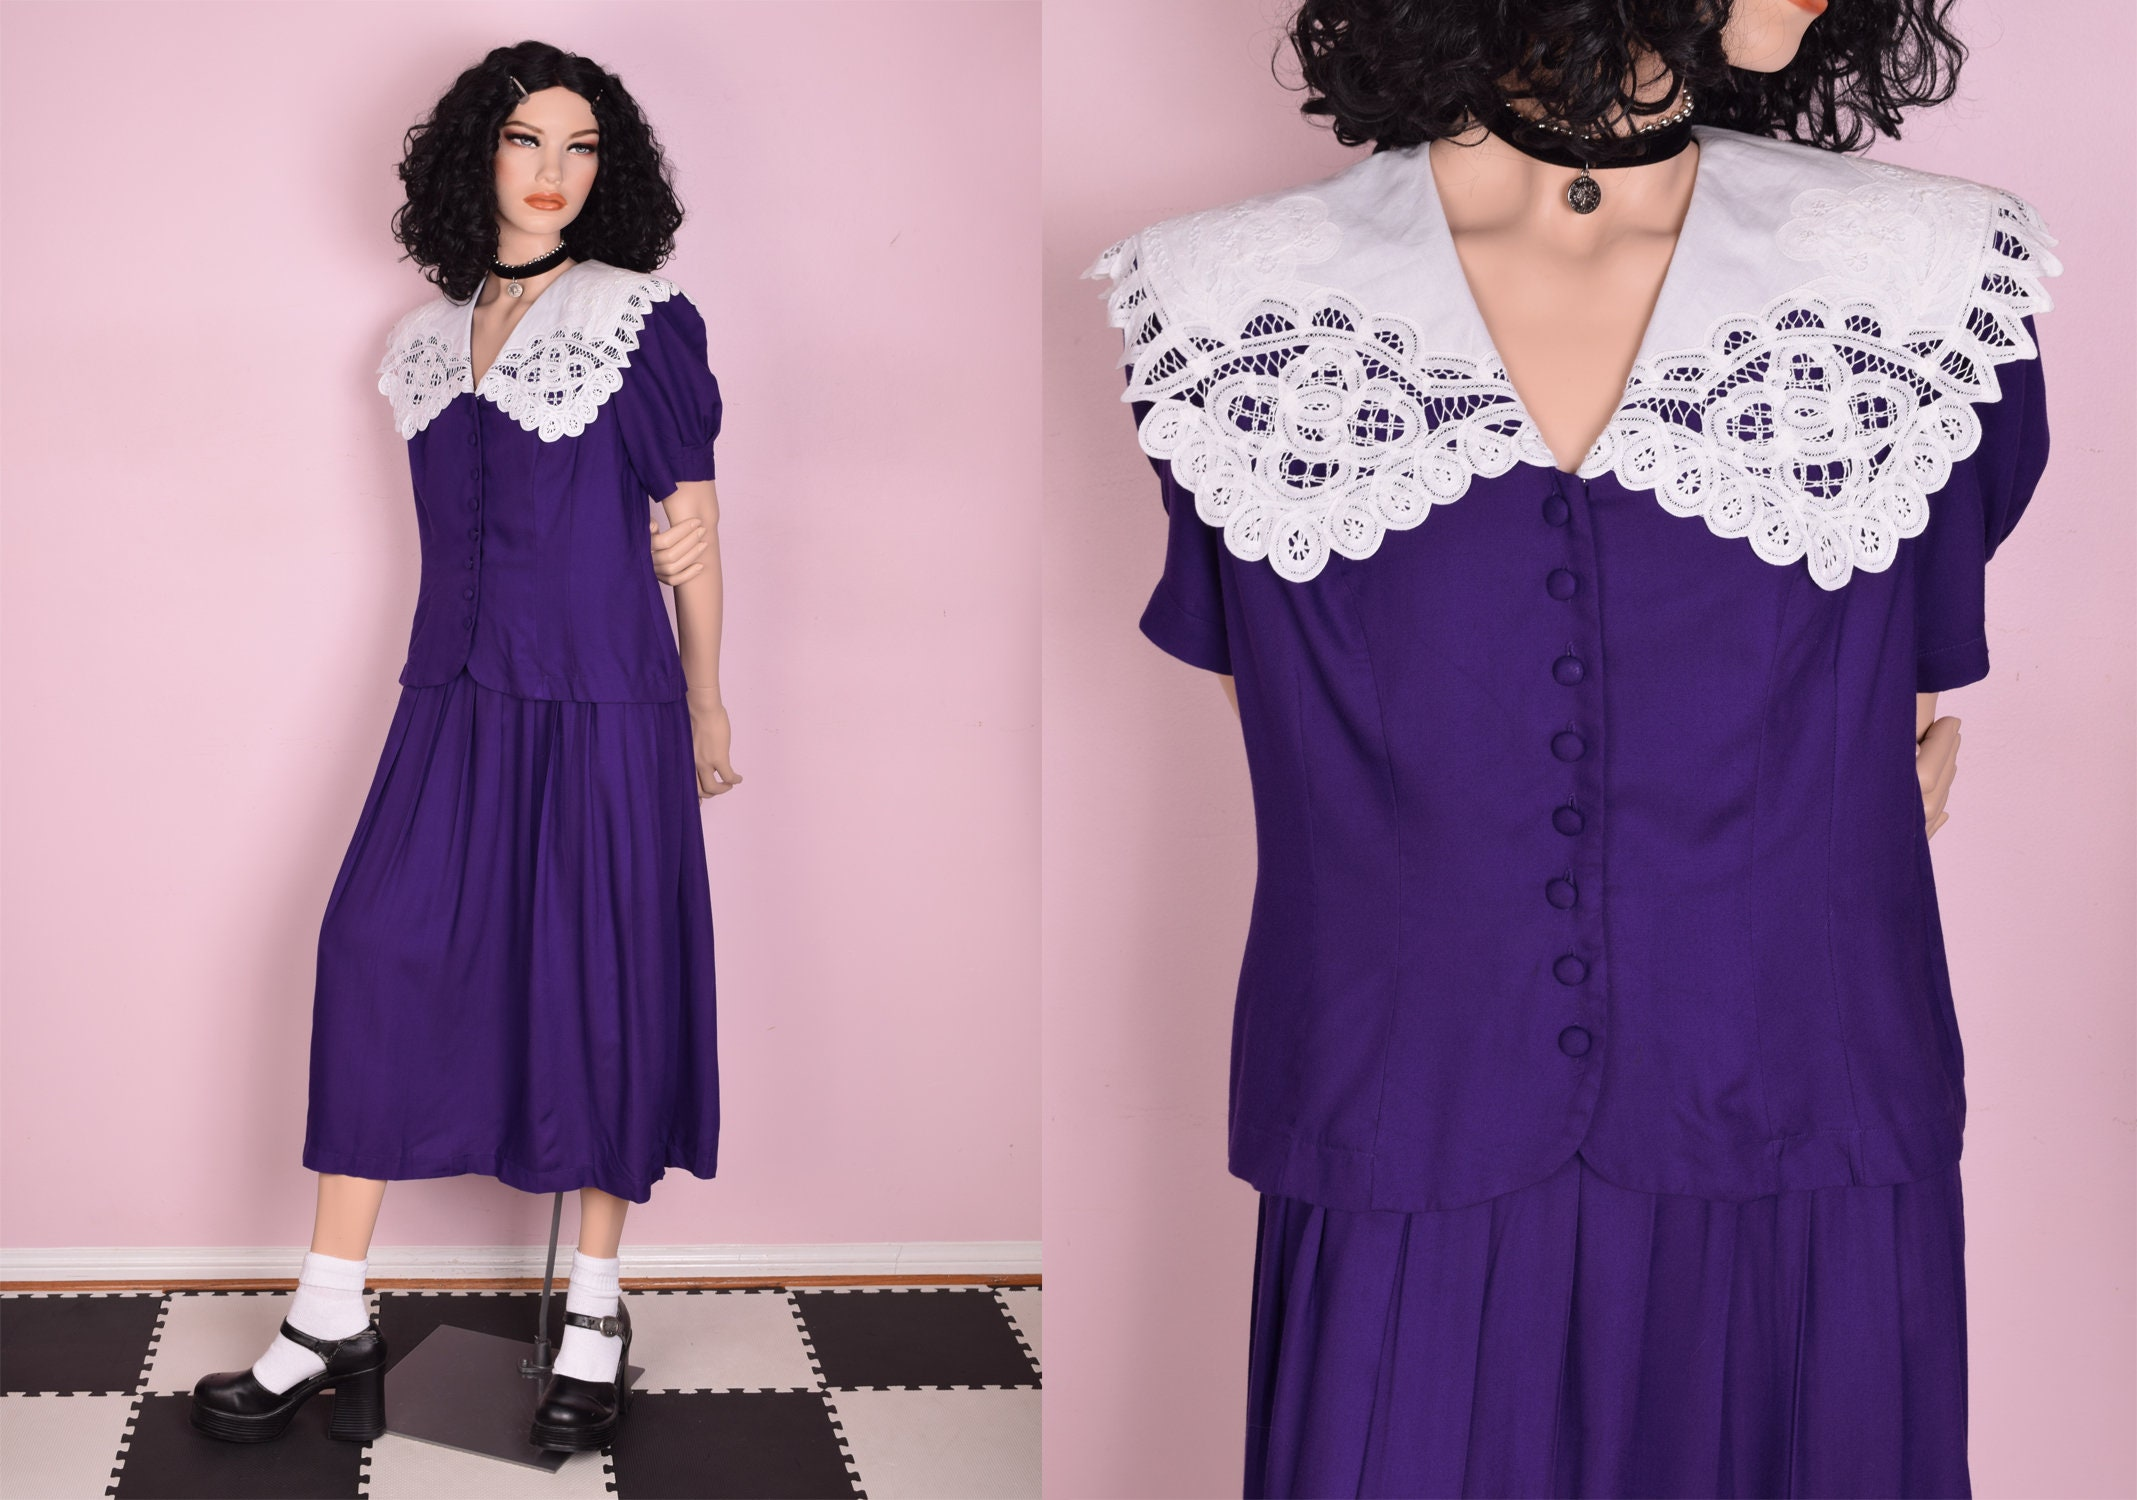 80s Dresses   Casual to Party Dresses 80S Purple  White Collared Dress Us 10 1980S $26.75 AT vintagedancer.com